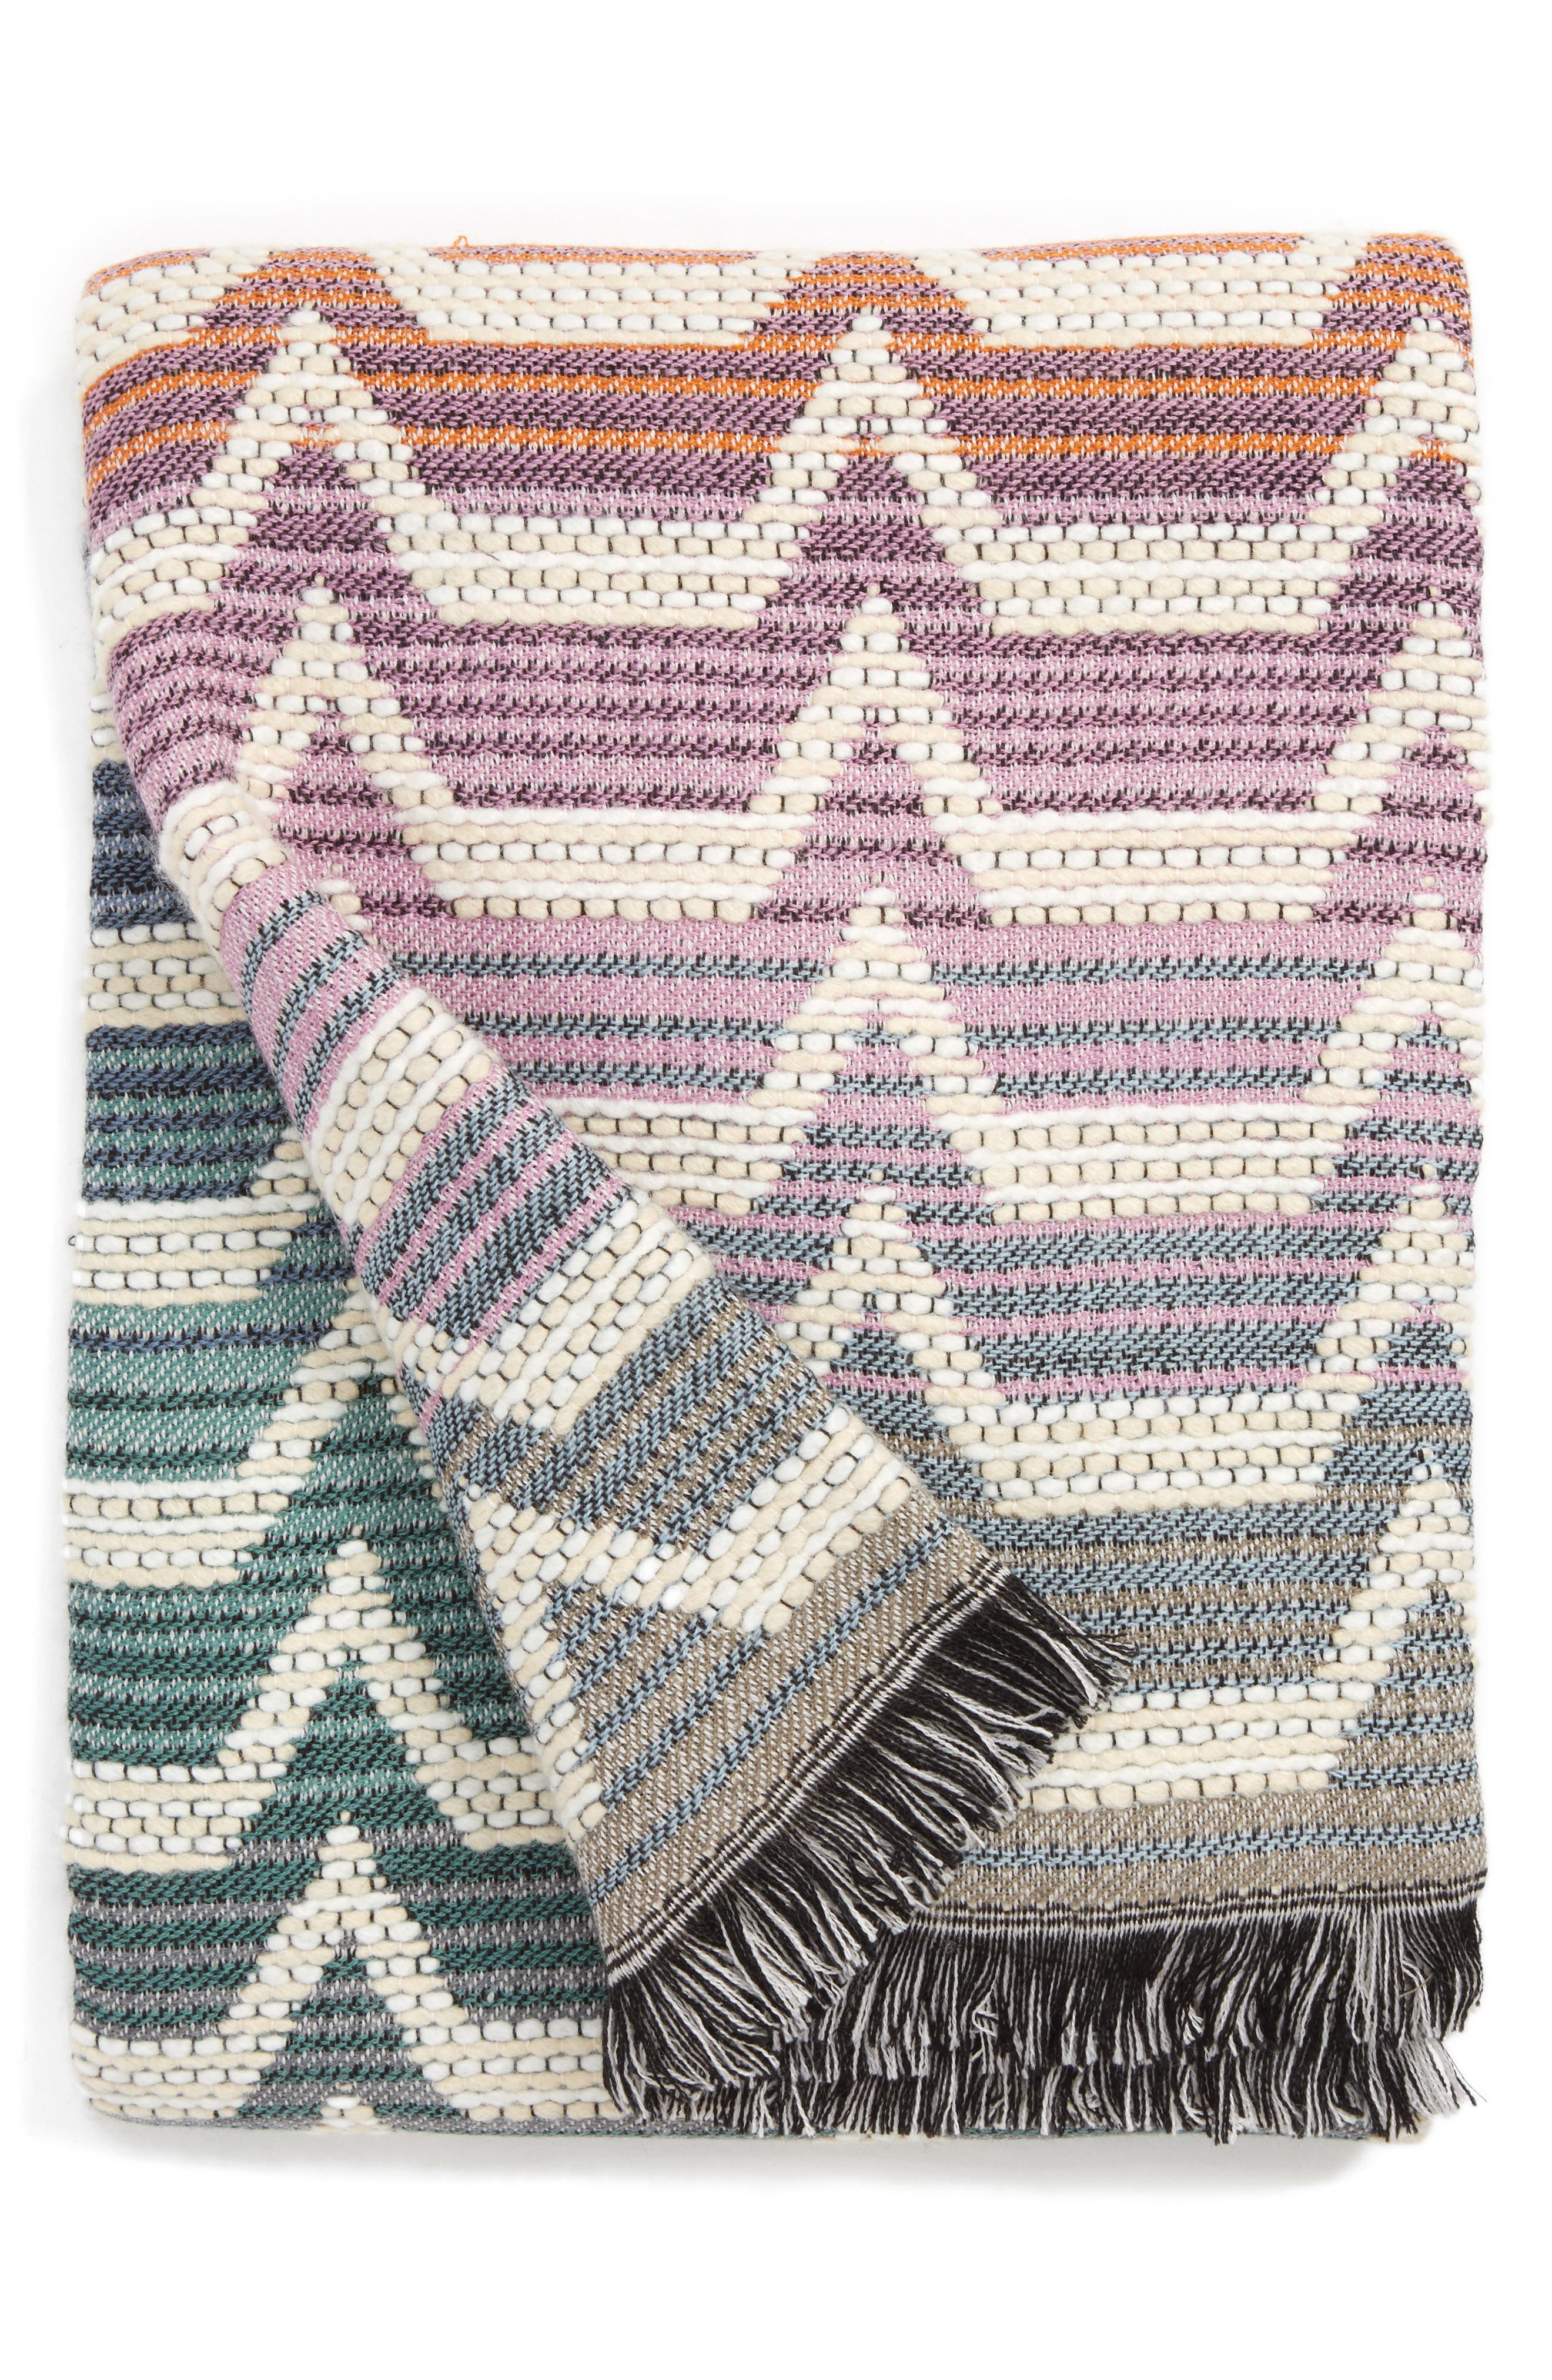 Socrate Throw Blanket,                             Main thumbnail 1, color,                             400